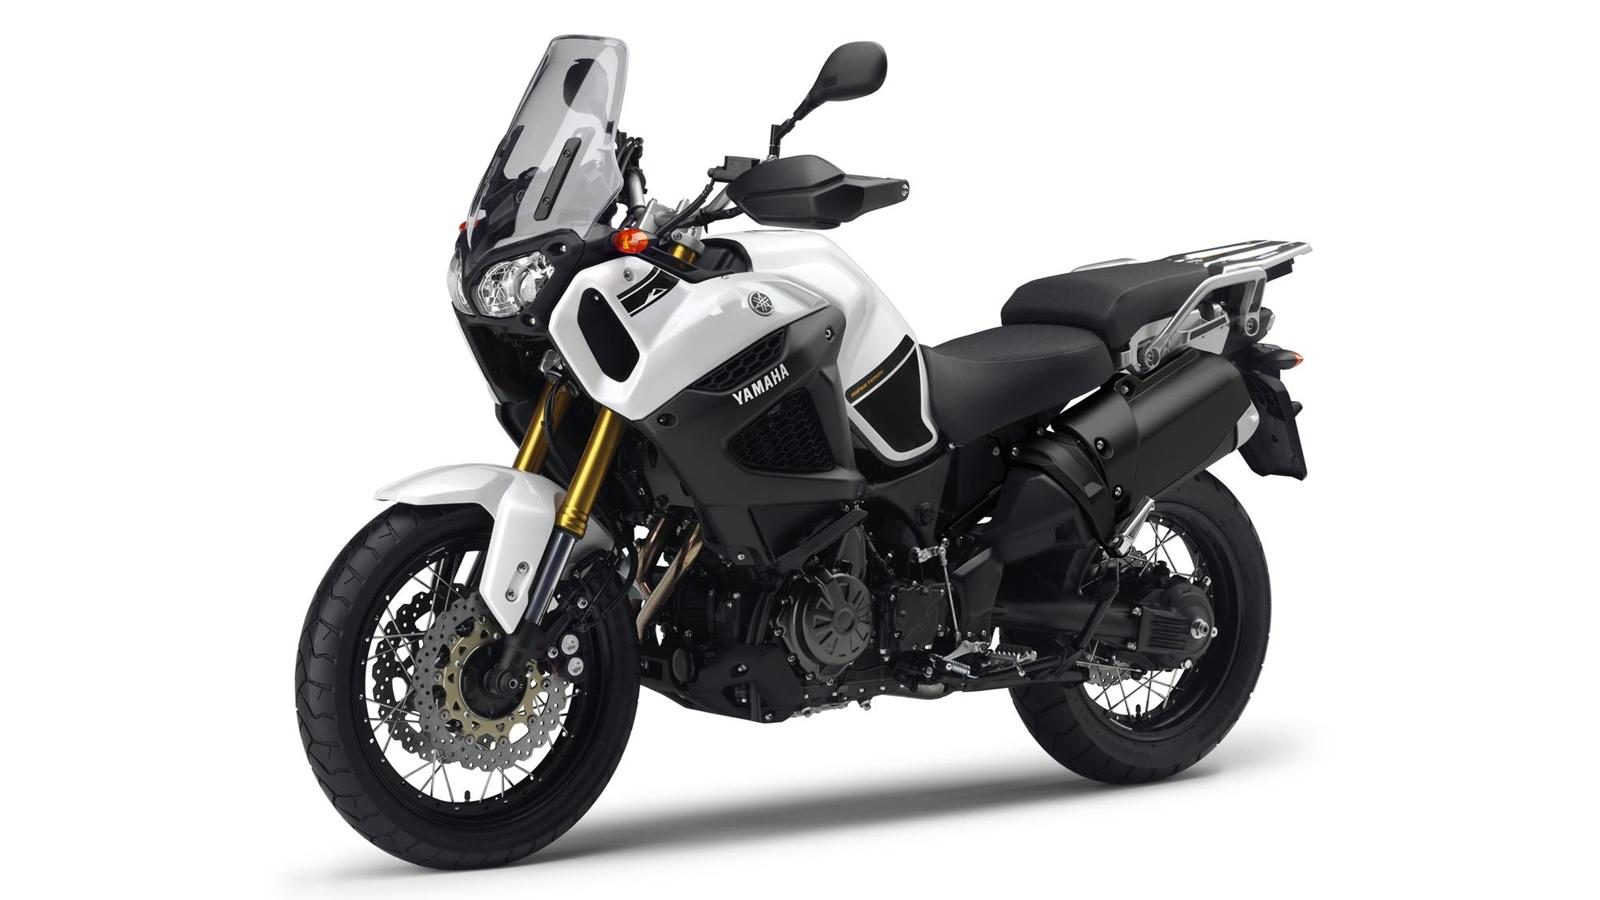 2013-yamaha-xt1200z-super-tenere-eu-competition-white-studio-007.jpg